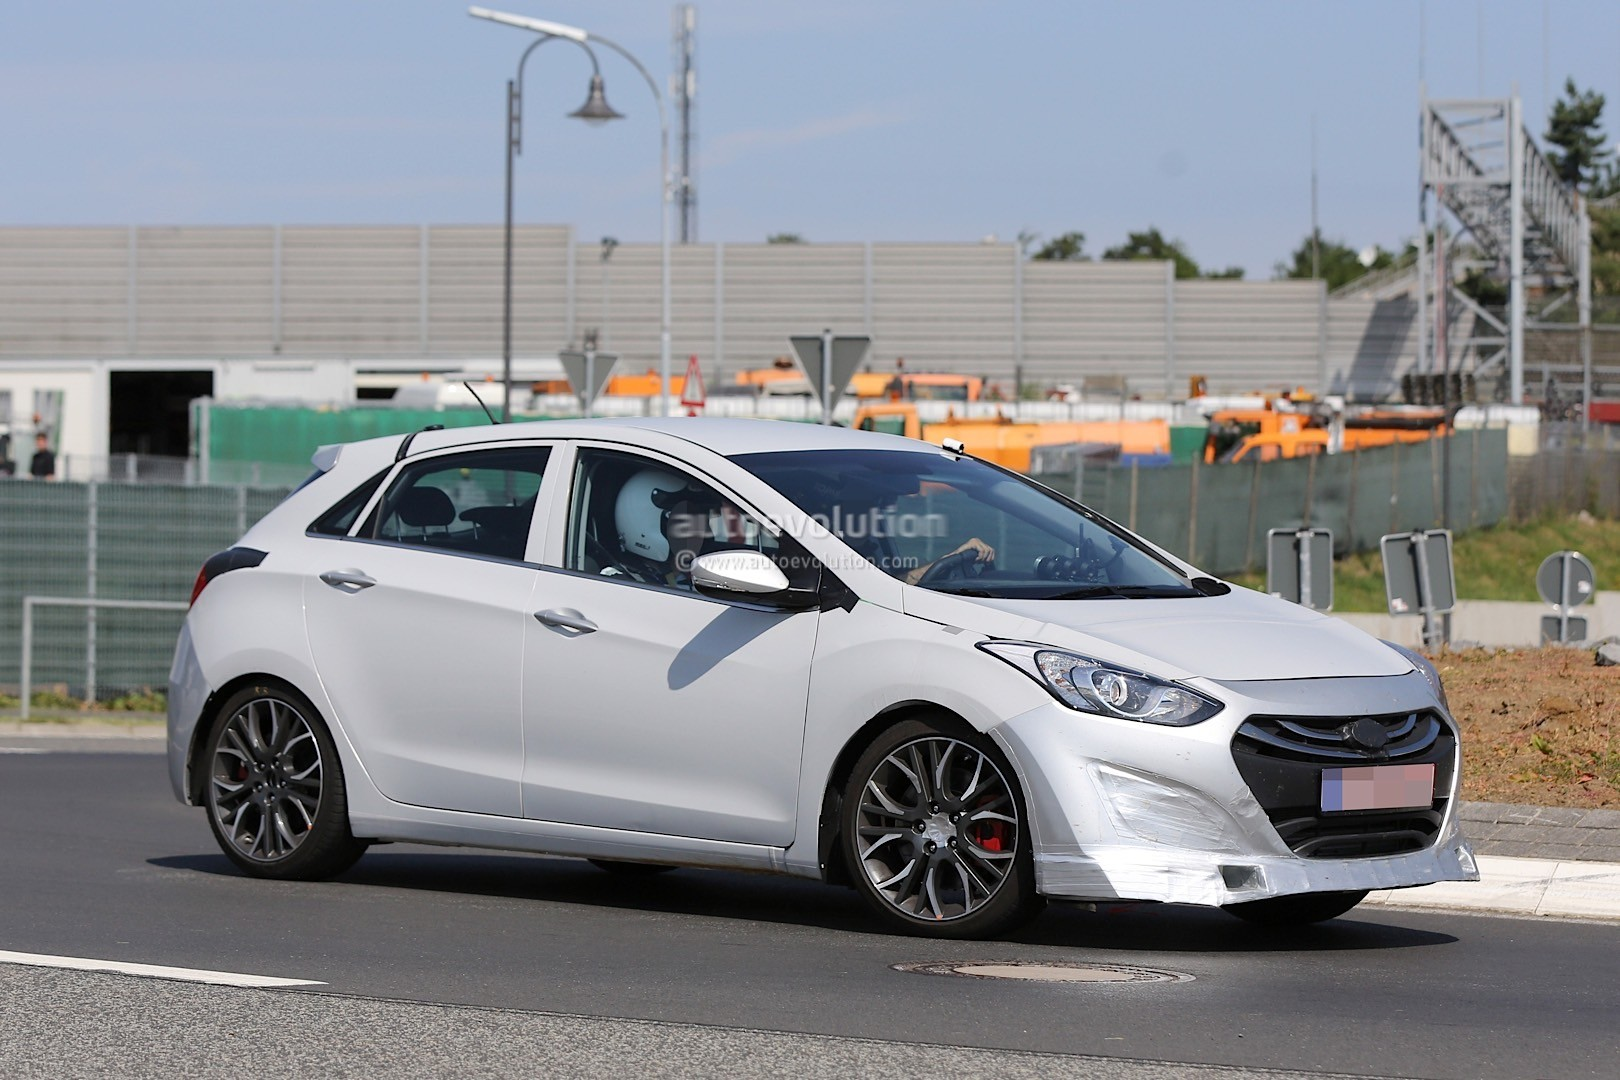 hyundai i30 n series prototype mule spied is this a true hot hatch autoevolution. Black Bedroom Furniture Sets. Home Design Ideas